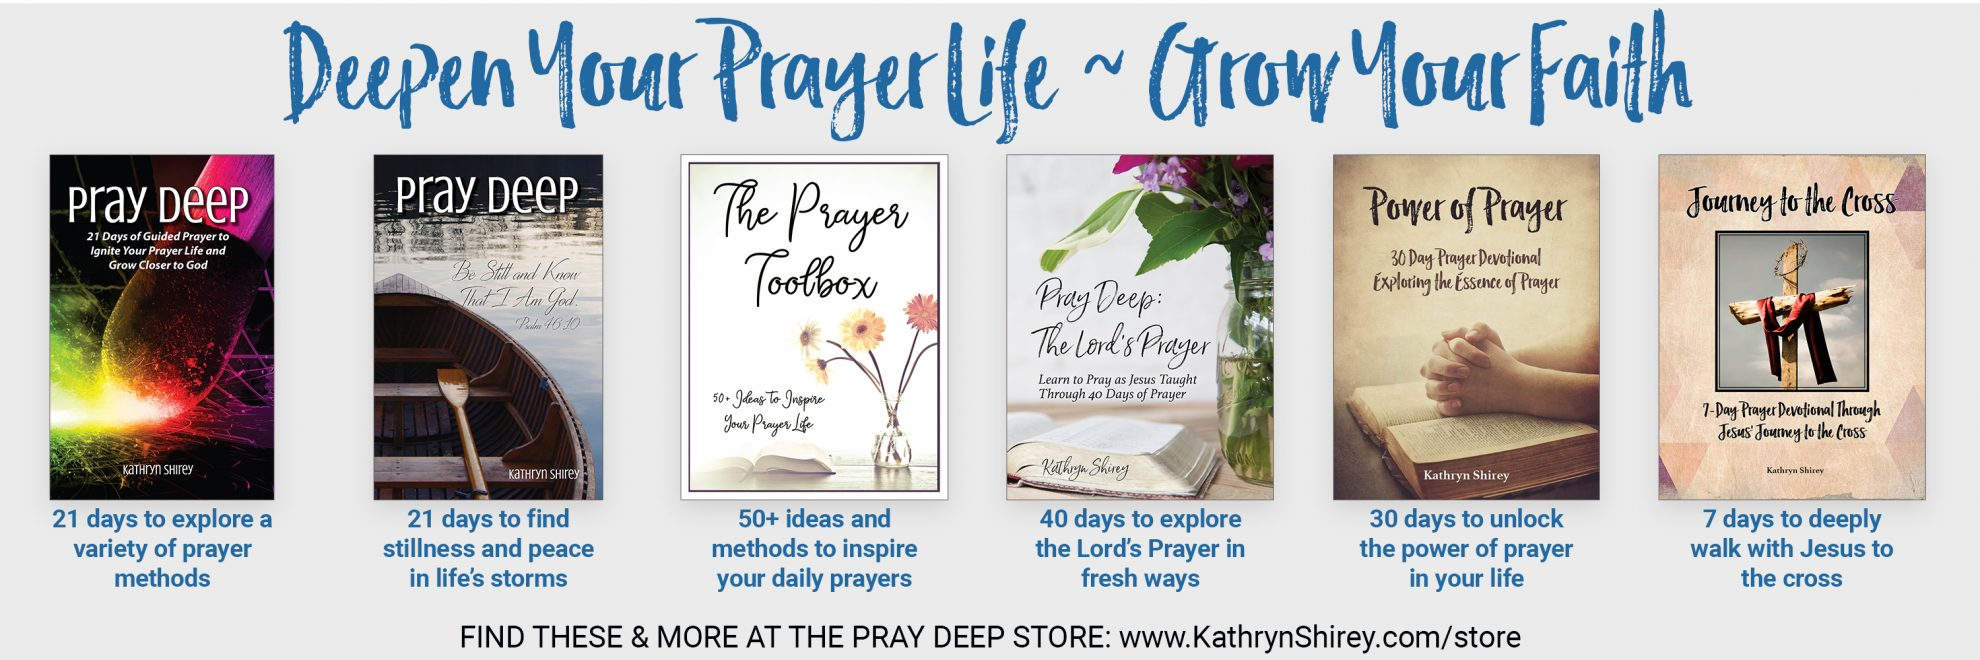 Daily devotionals to deepen your prayer life and grow your faith. Find free printables, prayer challenges, and daily devotionals in the Pray Deep Store